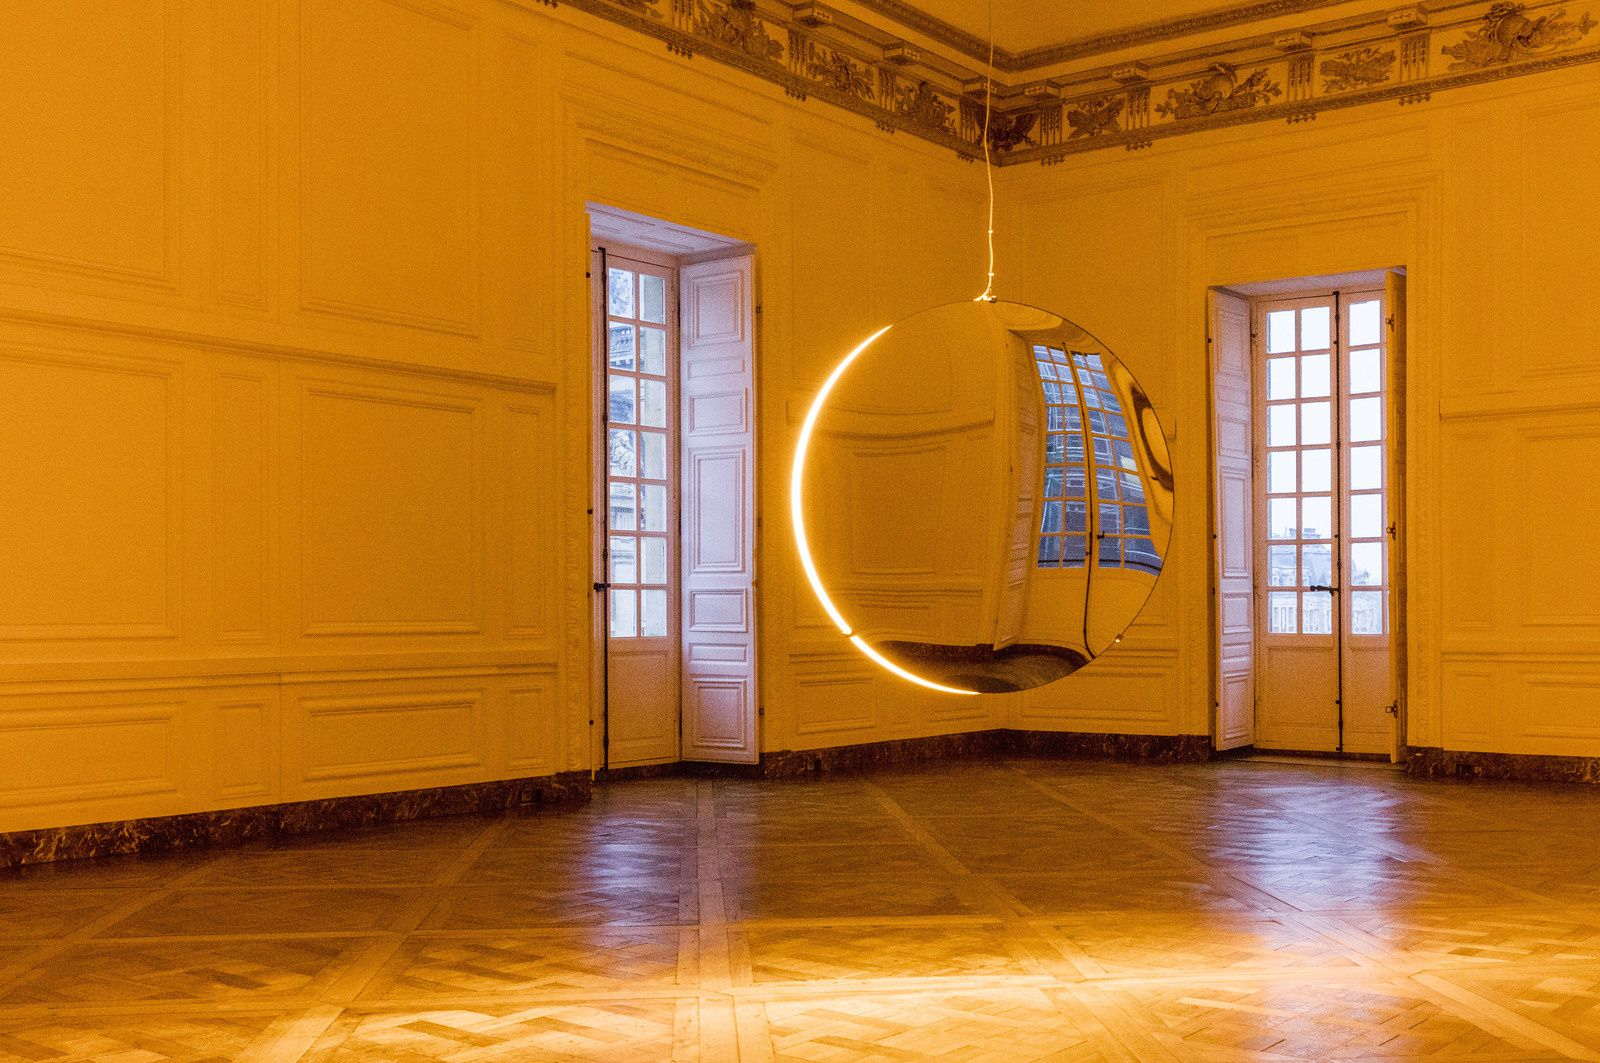 Solar compression, 2016 Installation view, Palace of Versailles, 2016 Photo: Anders Sune Berg Courtesy of the artist&#x3B; neugerriemschneider, Berlin&#x3B; Tanya Bonakdar Gallery, New York © 2016 Olafur Eliasson